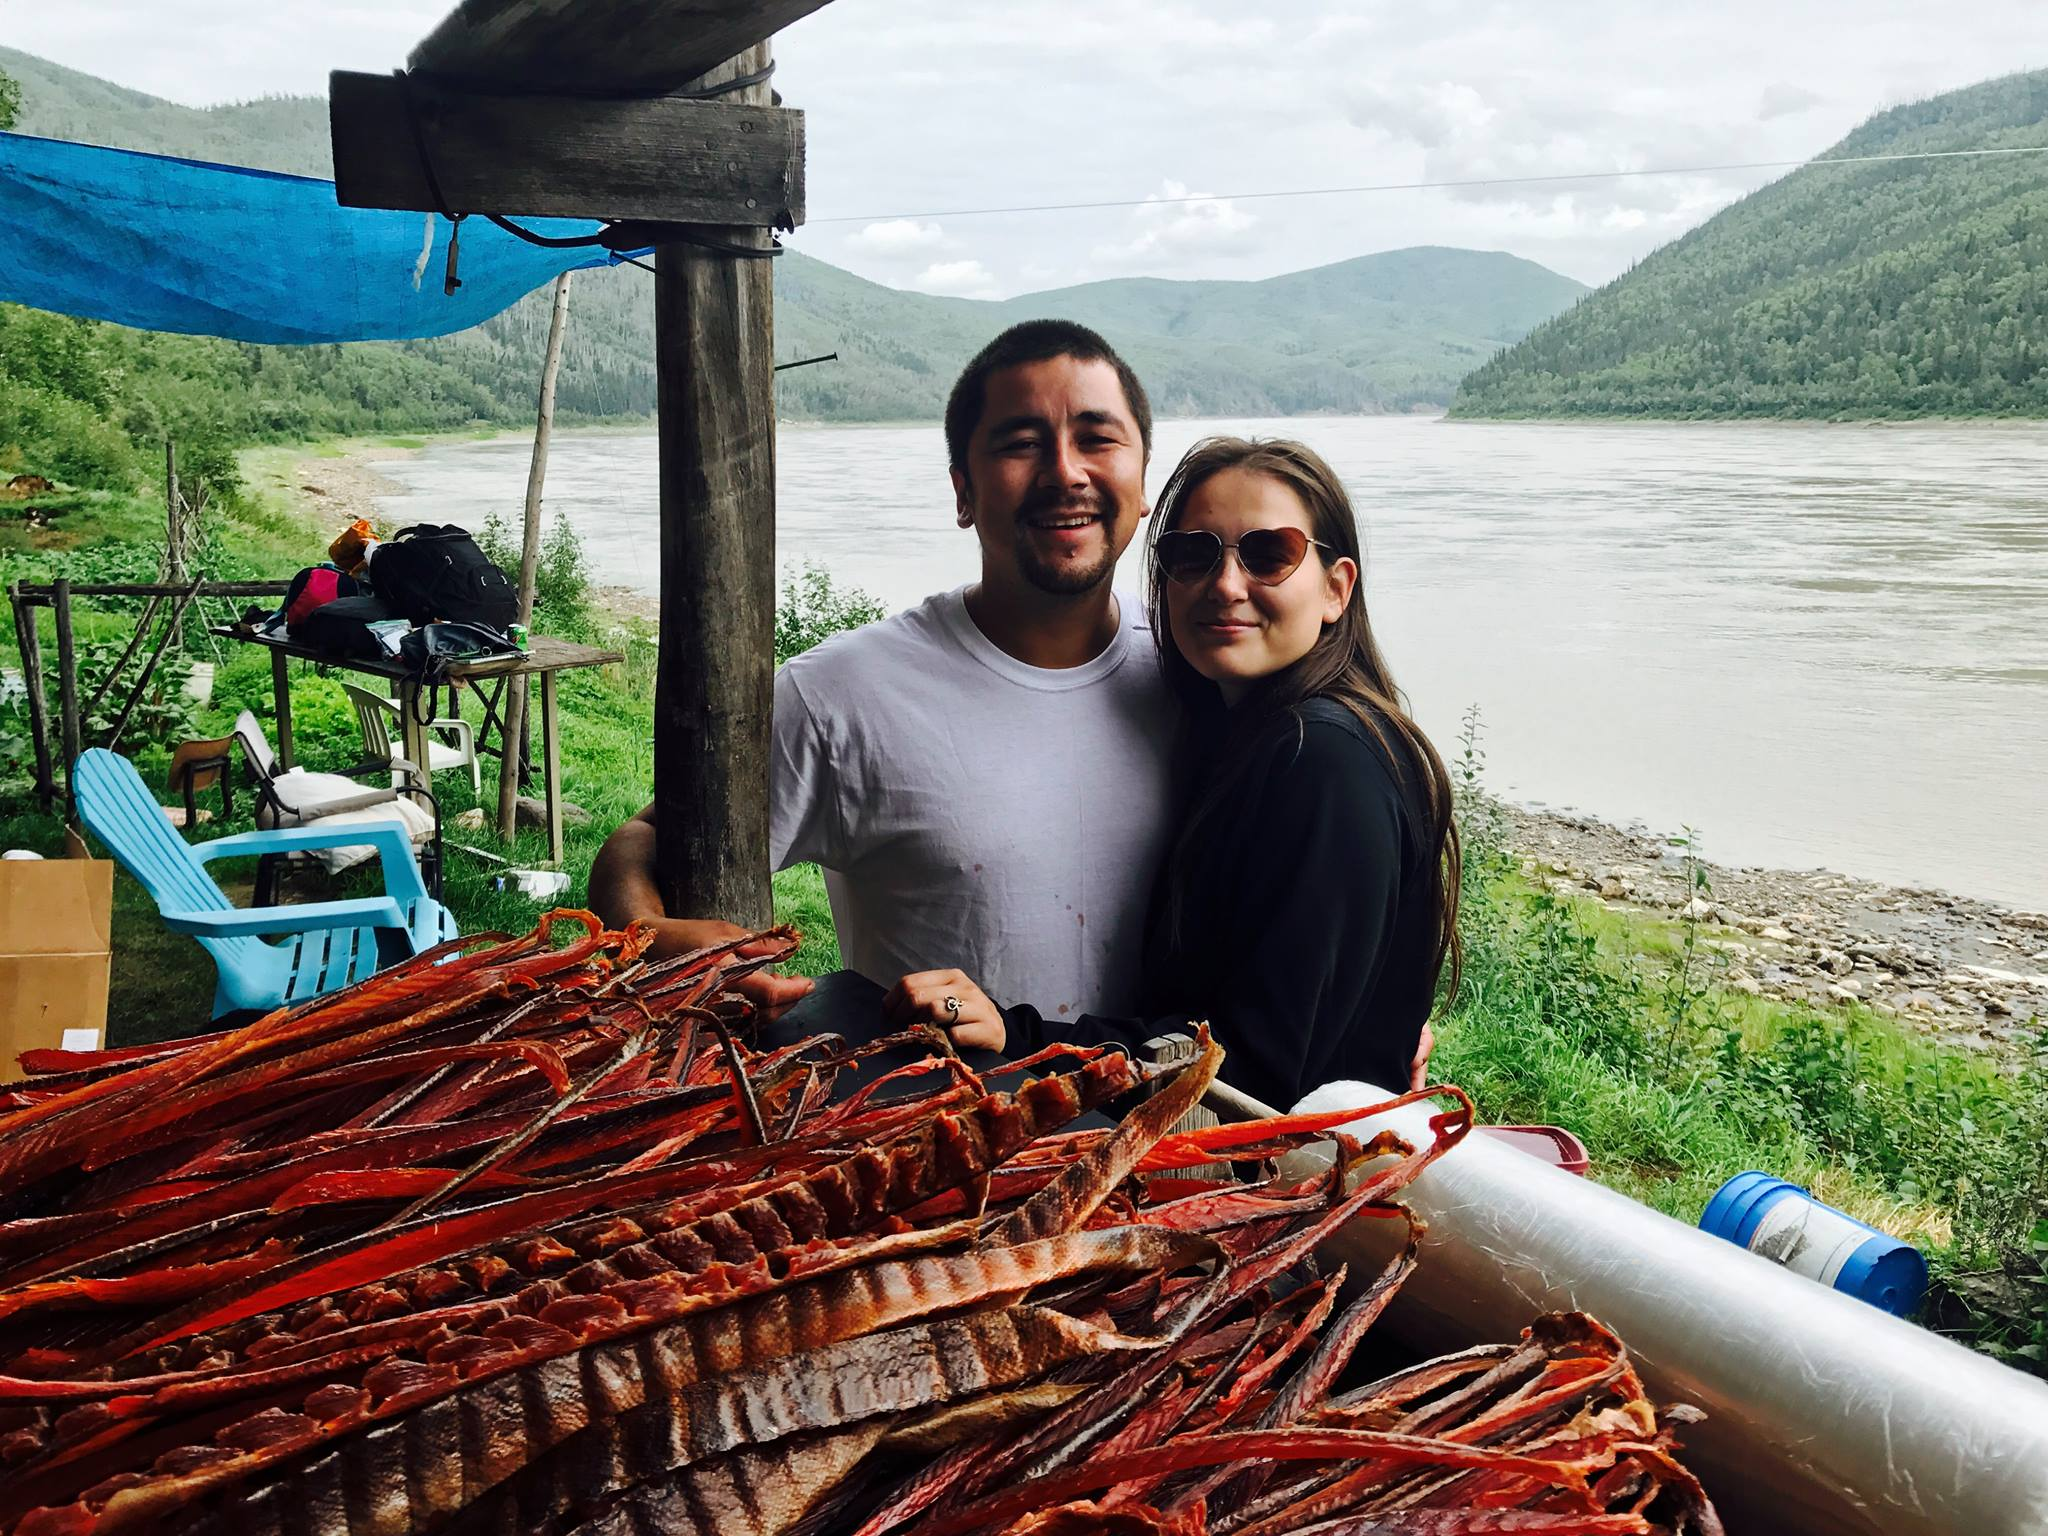 Joey Zuray and his girlfriend in the bank of the river